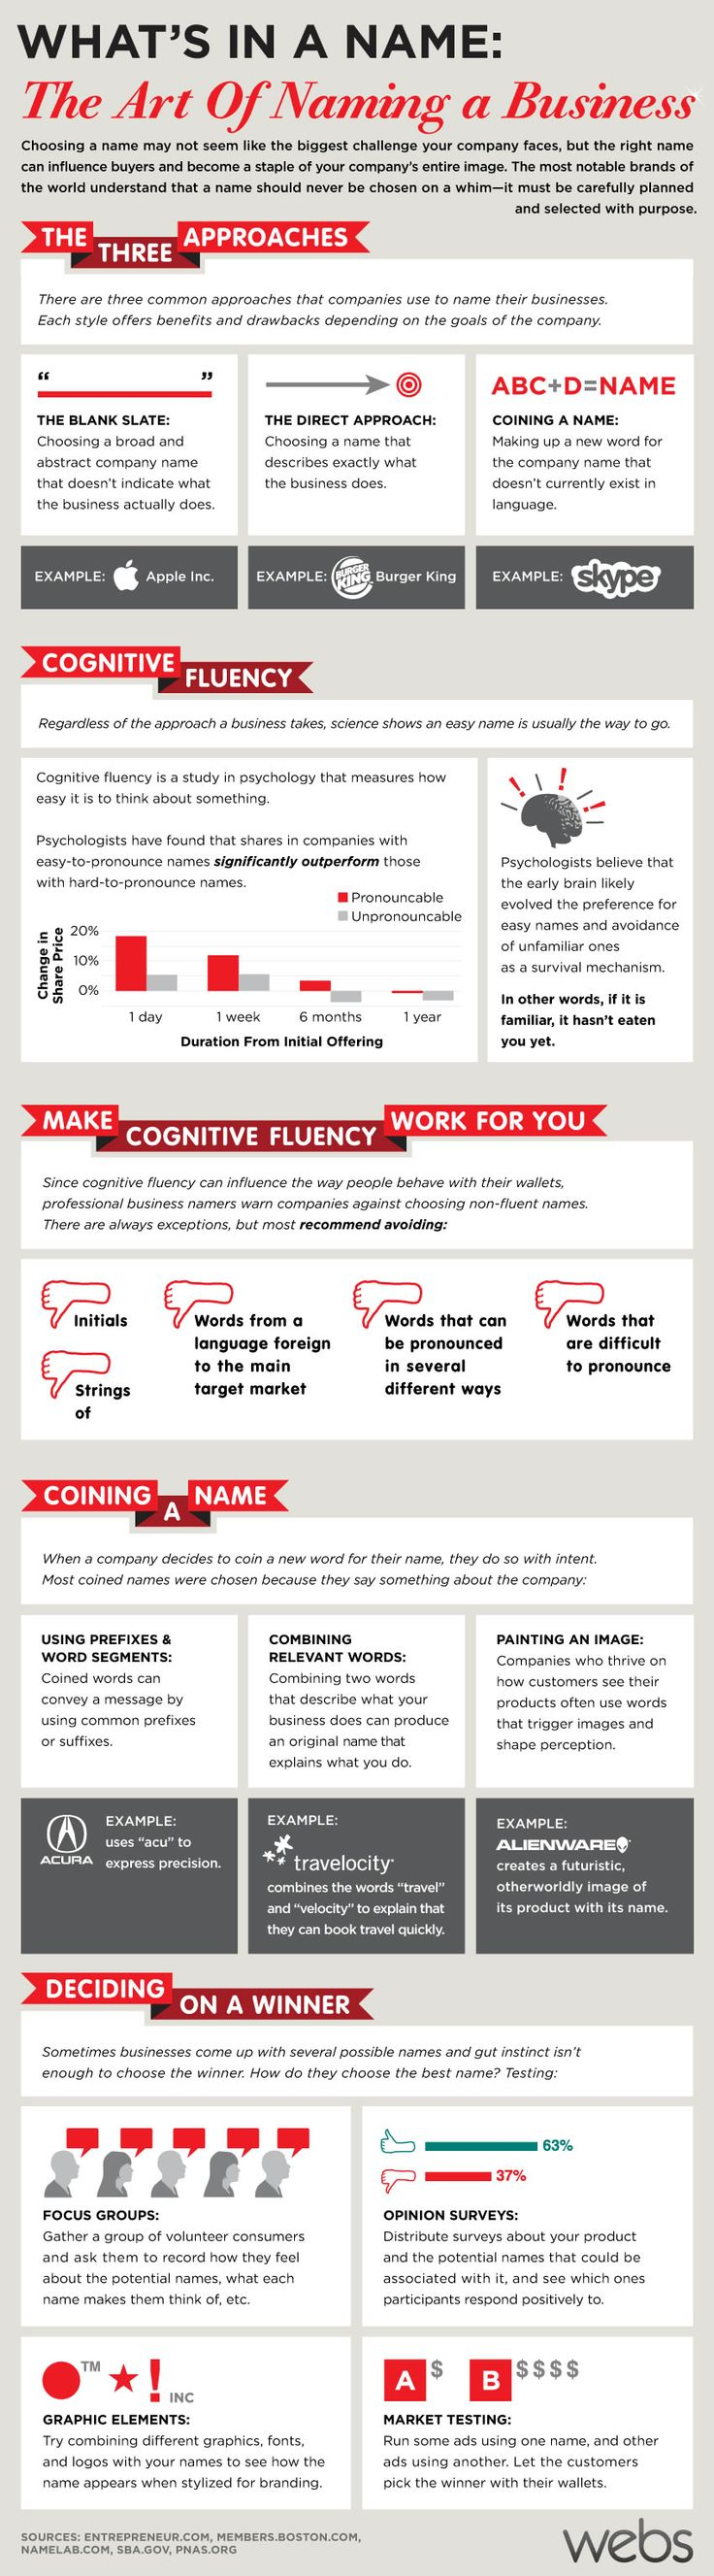 Naming A Business Infographic